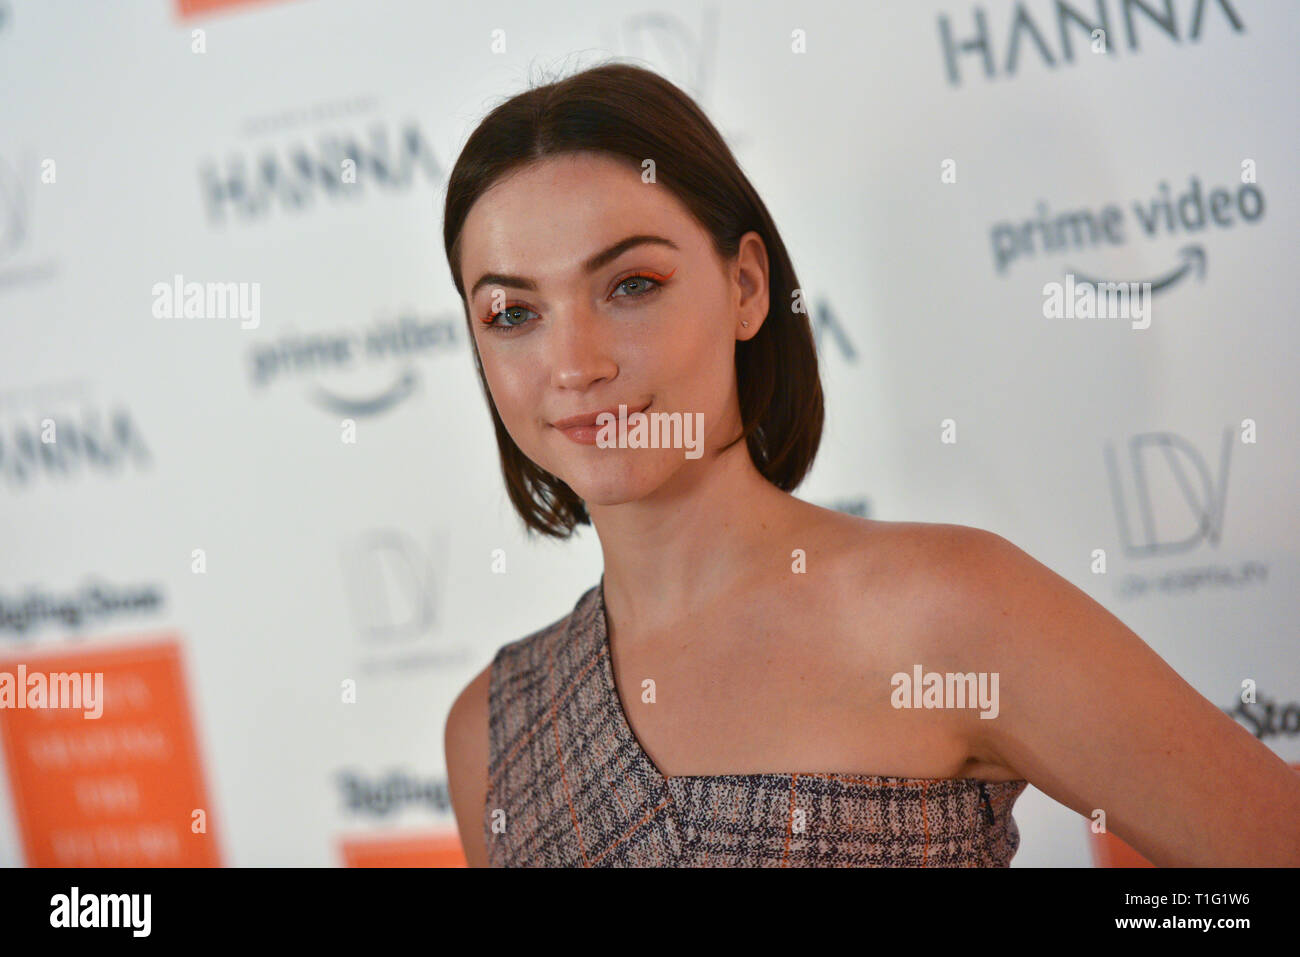 Violett Beane attends the Rolling Stone's Women Shaping The Future Brunch at the Altman Building on March 20, 2019 in New York City. - Stock Image